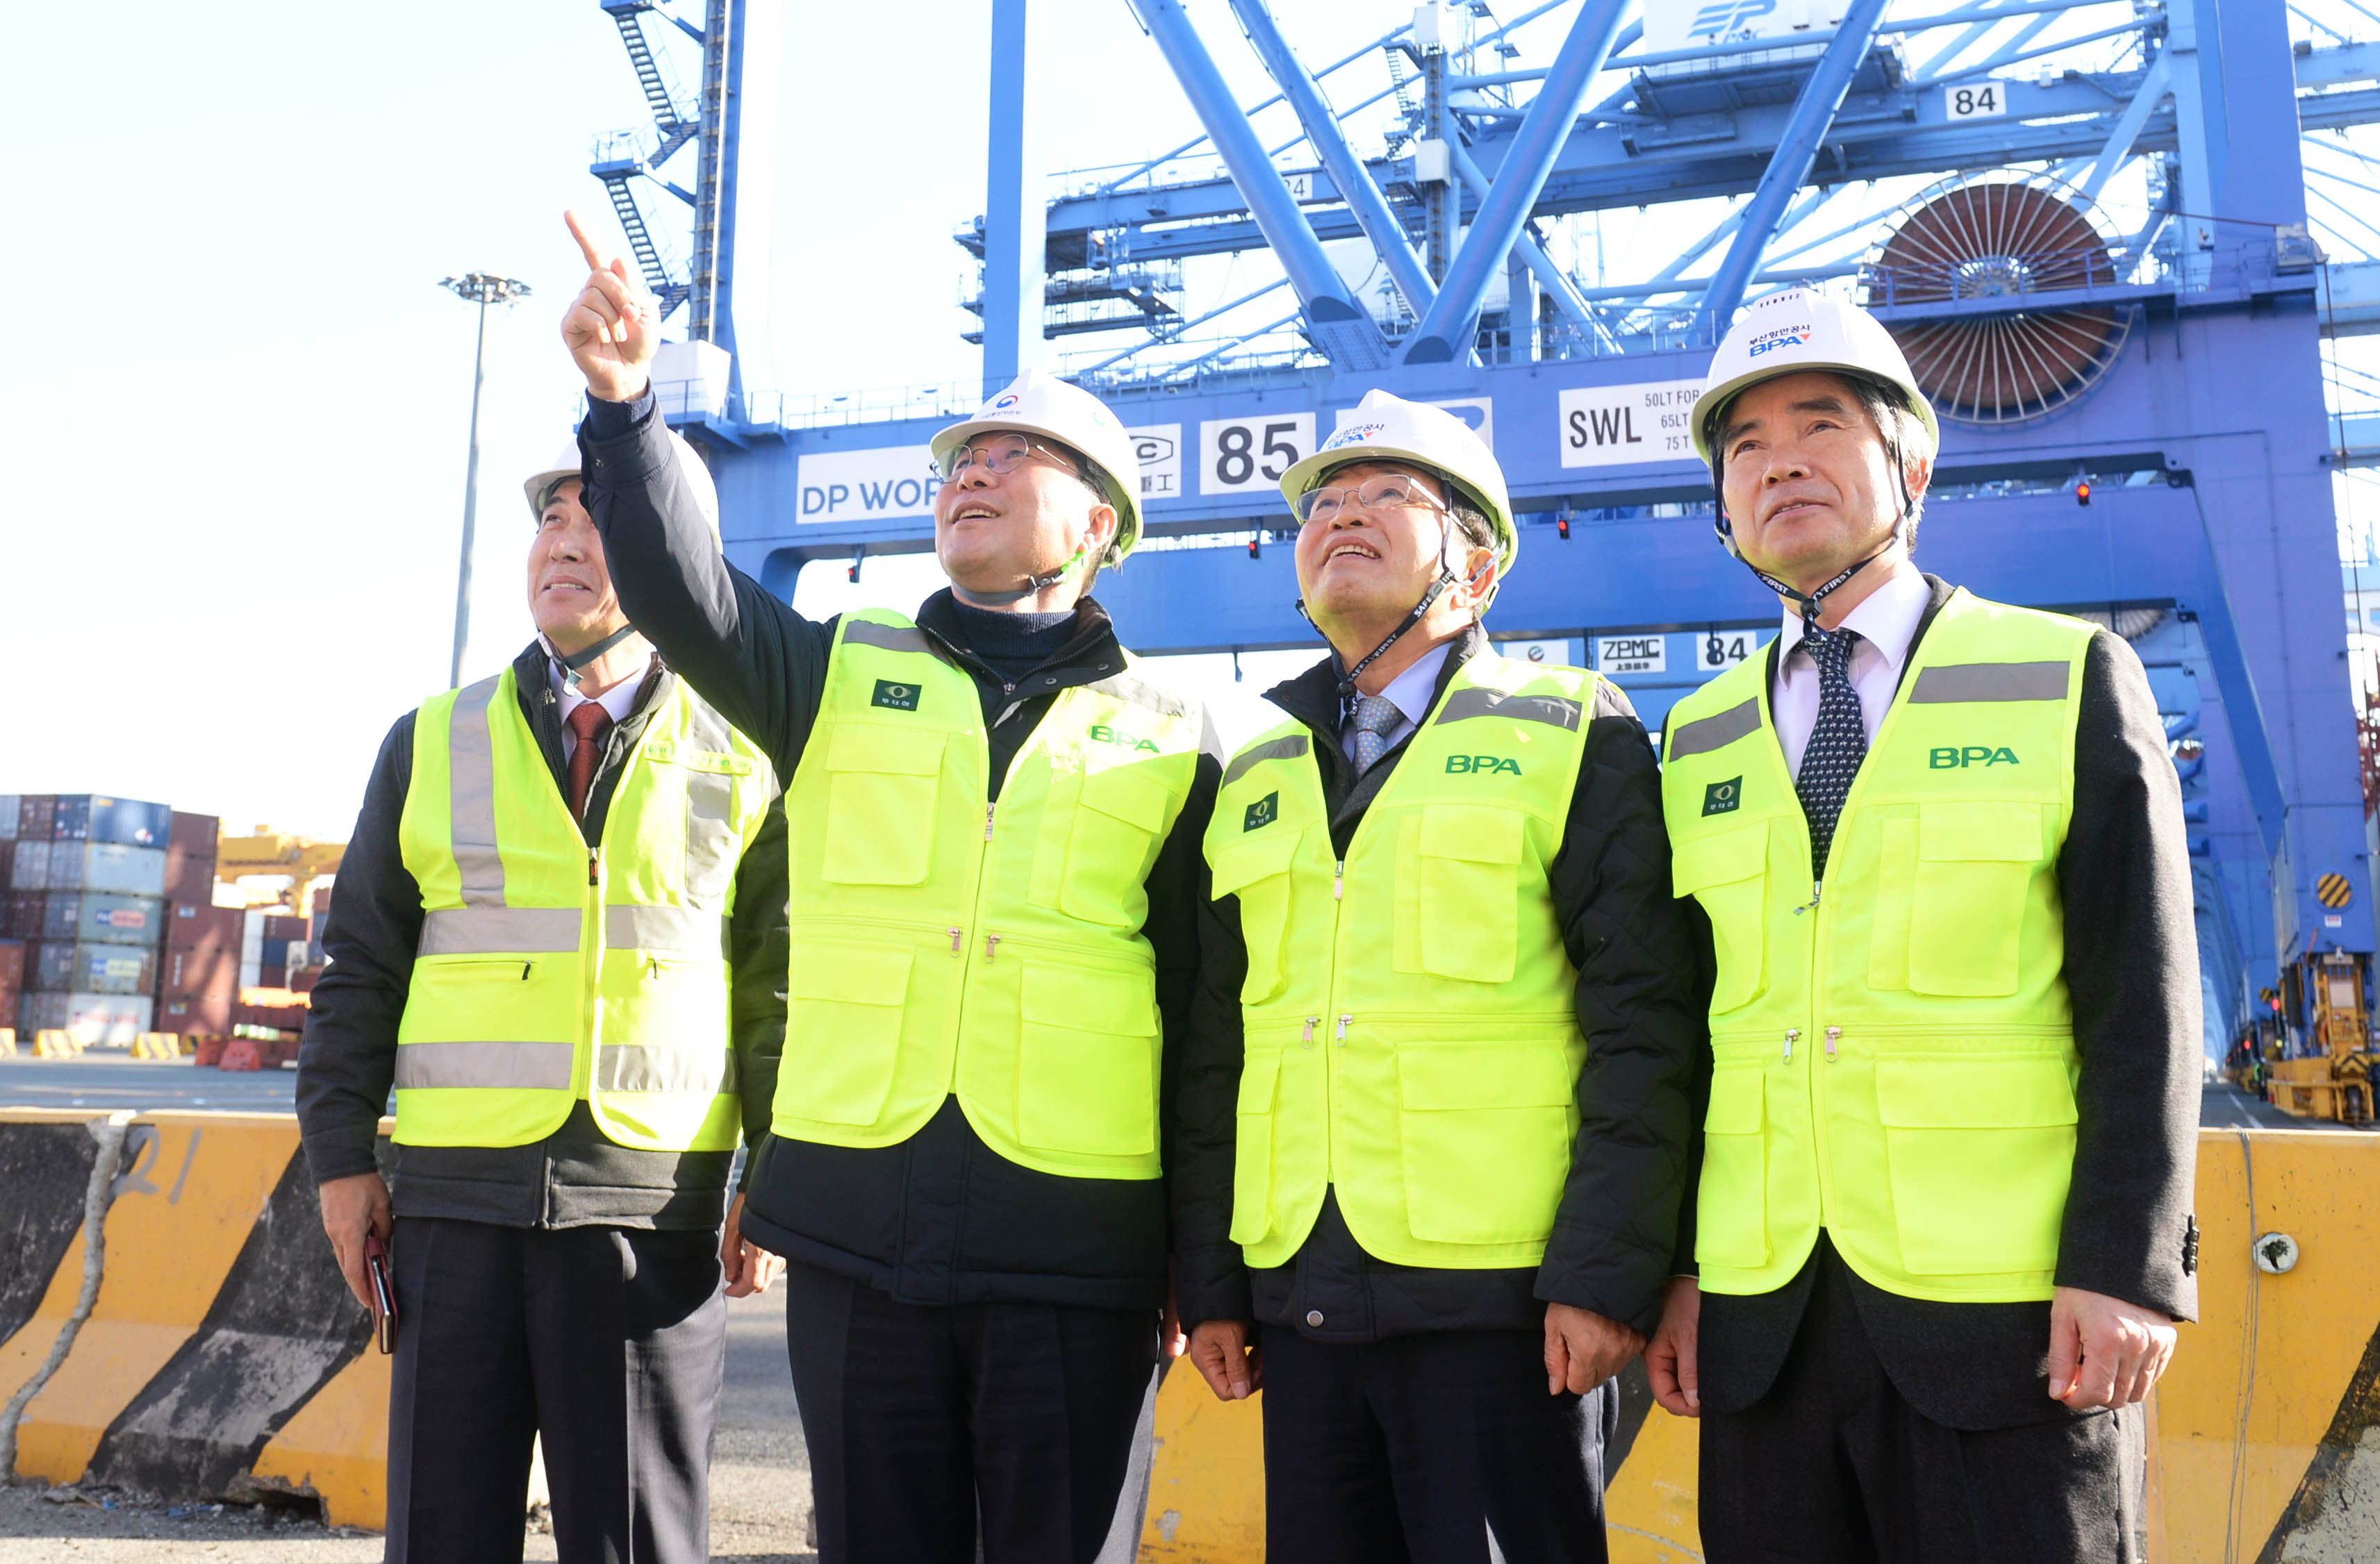 Minister Sung visits Korea's largest port in Busan to encourage shipping industry workers